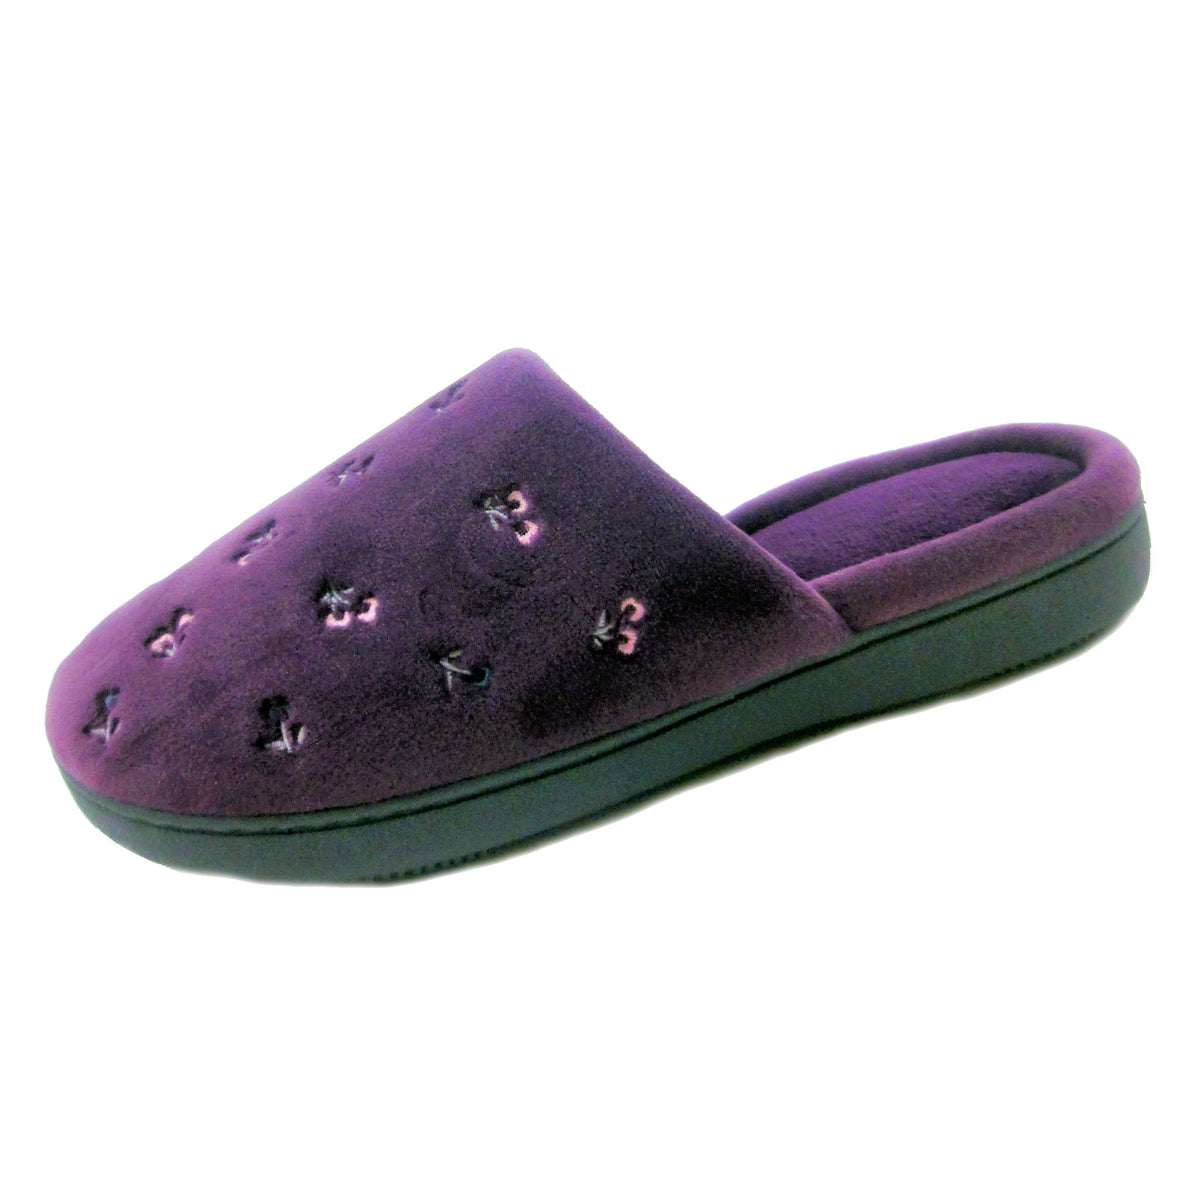 Isotoner Women's Velour Clog Slippers With Embroidery